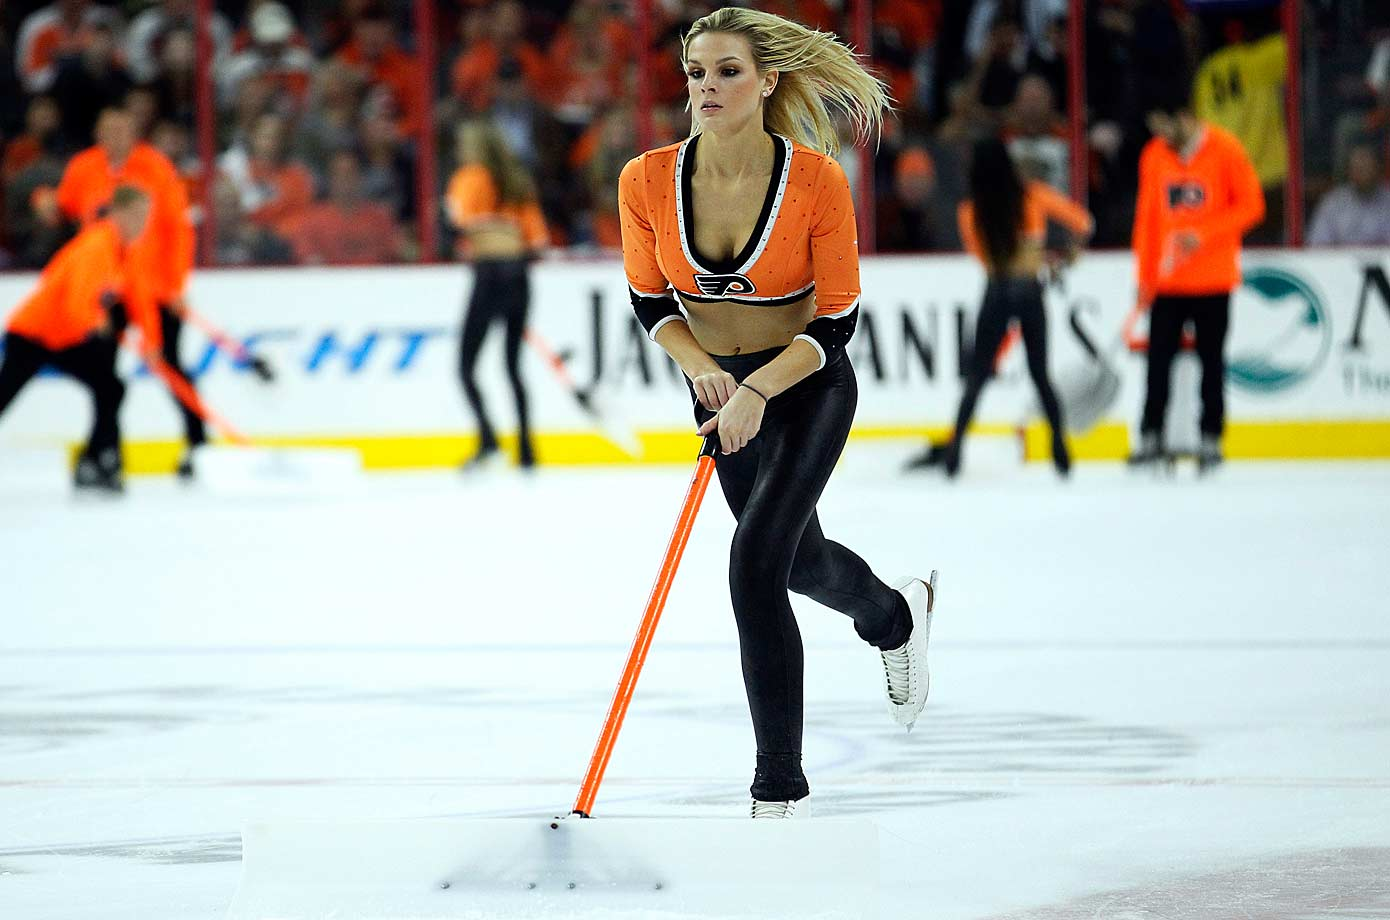 Many Philly fans were delighted when the team decided to reinstate its all-female ice maintenance crew after it had been shelved during the preseason. Alas, an all-male version had not been warmly received.